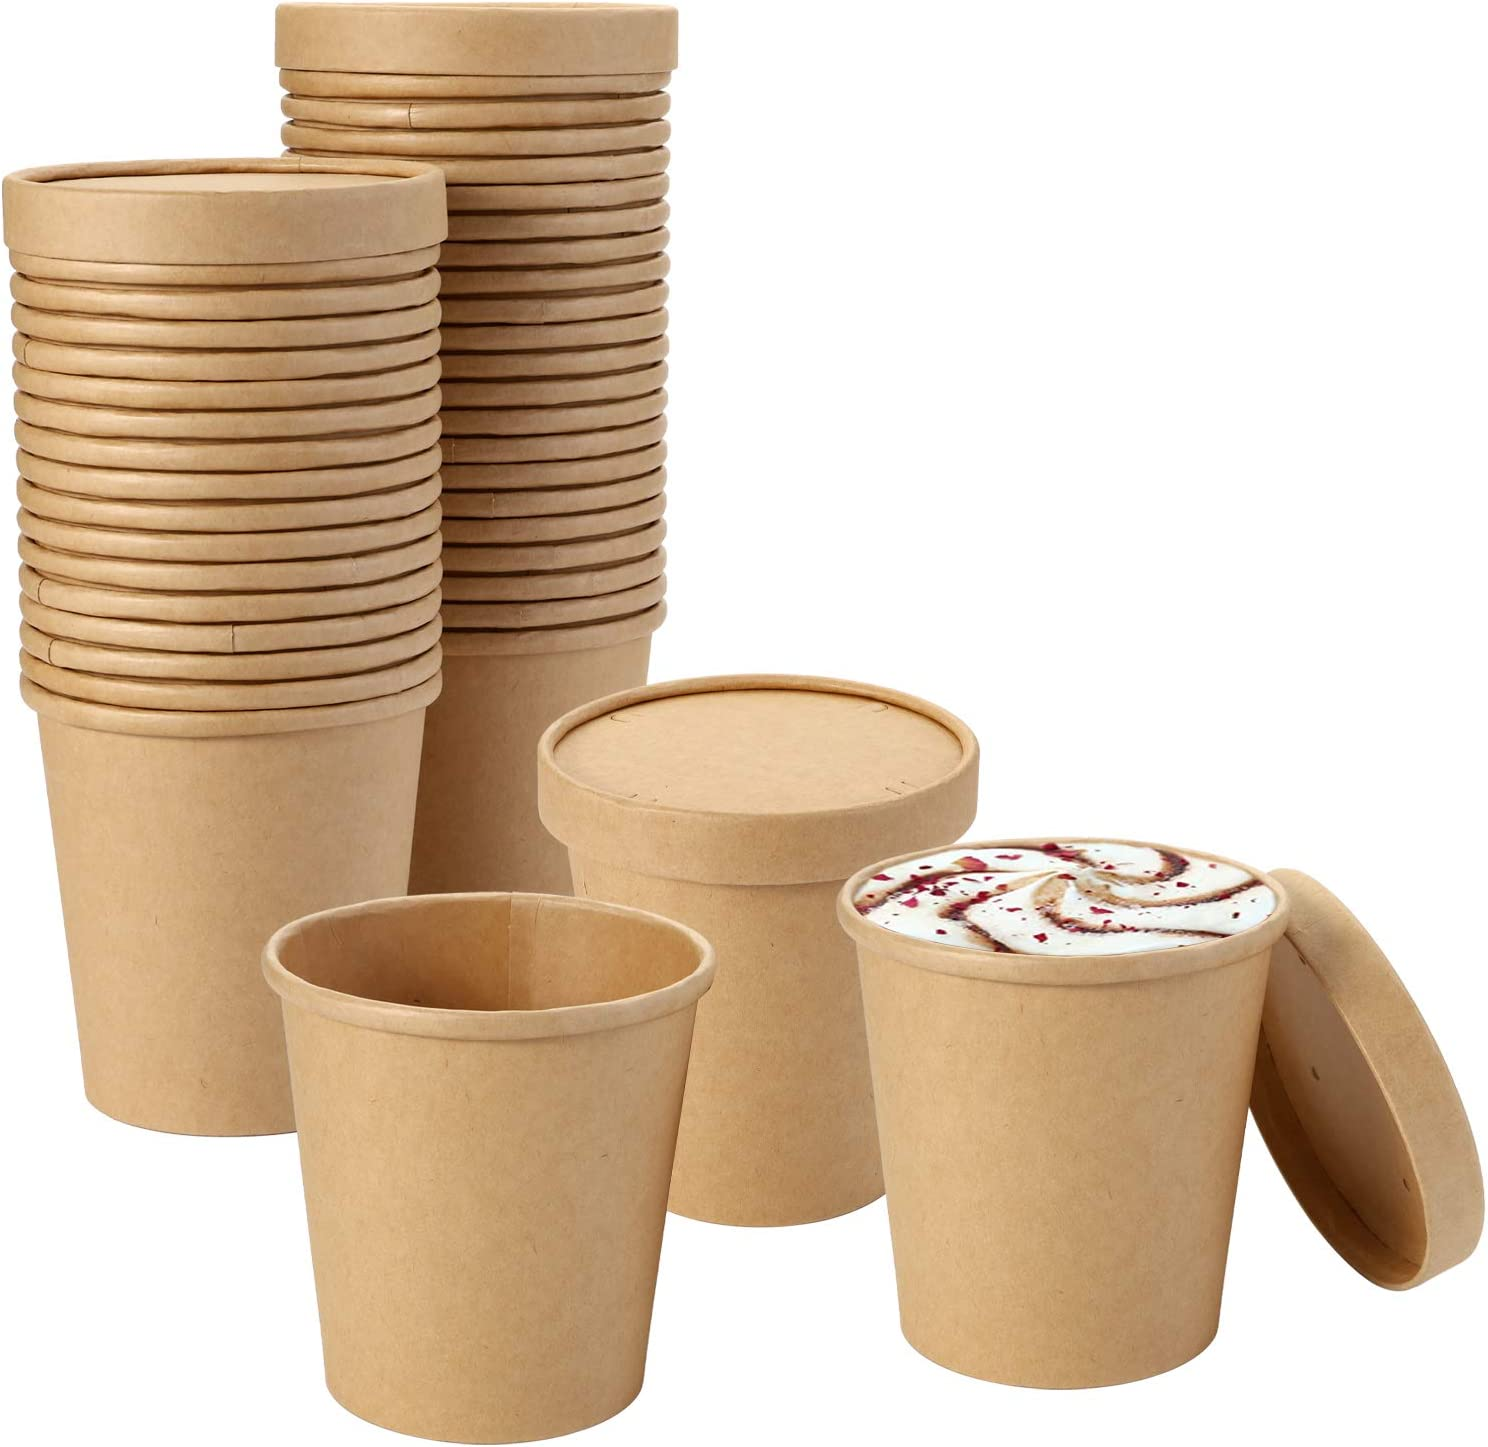 Suwimut 40 Pack Disposable Bowls with Lid, 16 oz Kraft Paper Bowls with Lid, Small Brown Rolled Rim Storage Bucket for Soup, Sundae, Frozen Dessert Yogurt Ice Cream, Hot or Cold Dish To Go Packaging